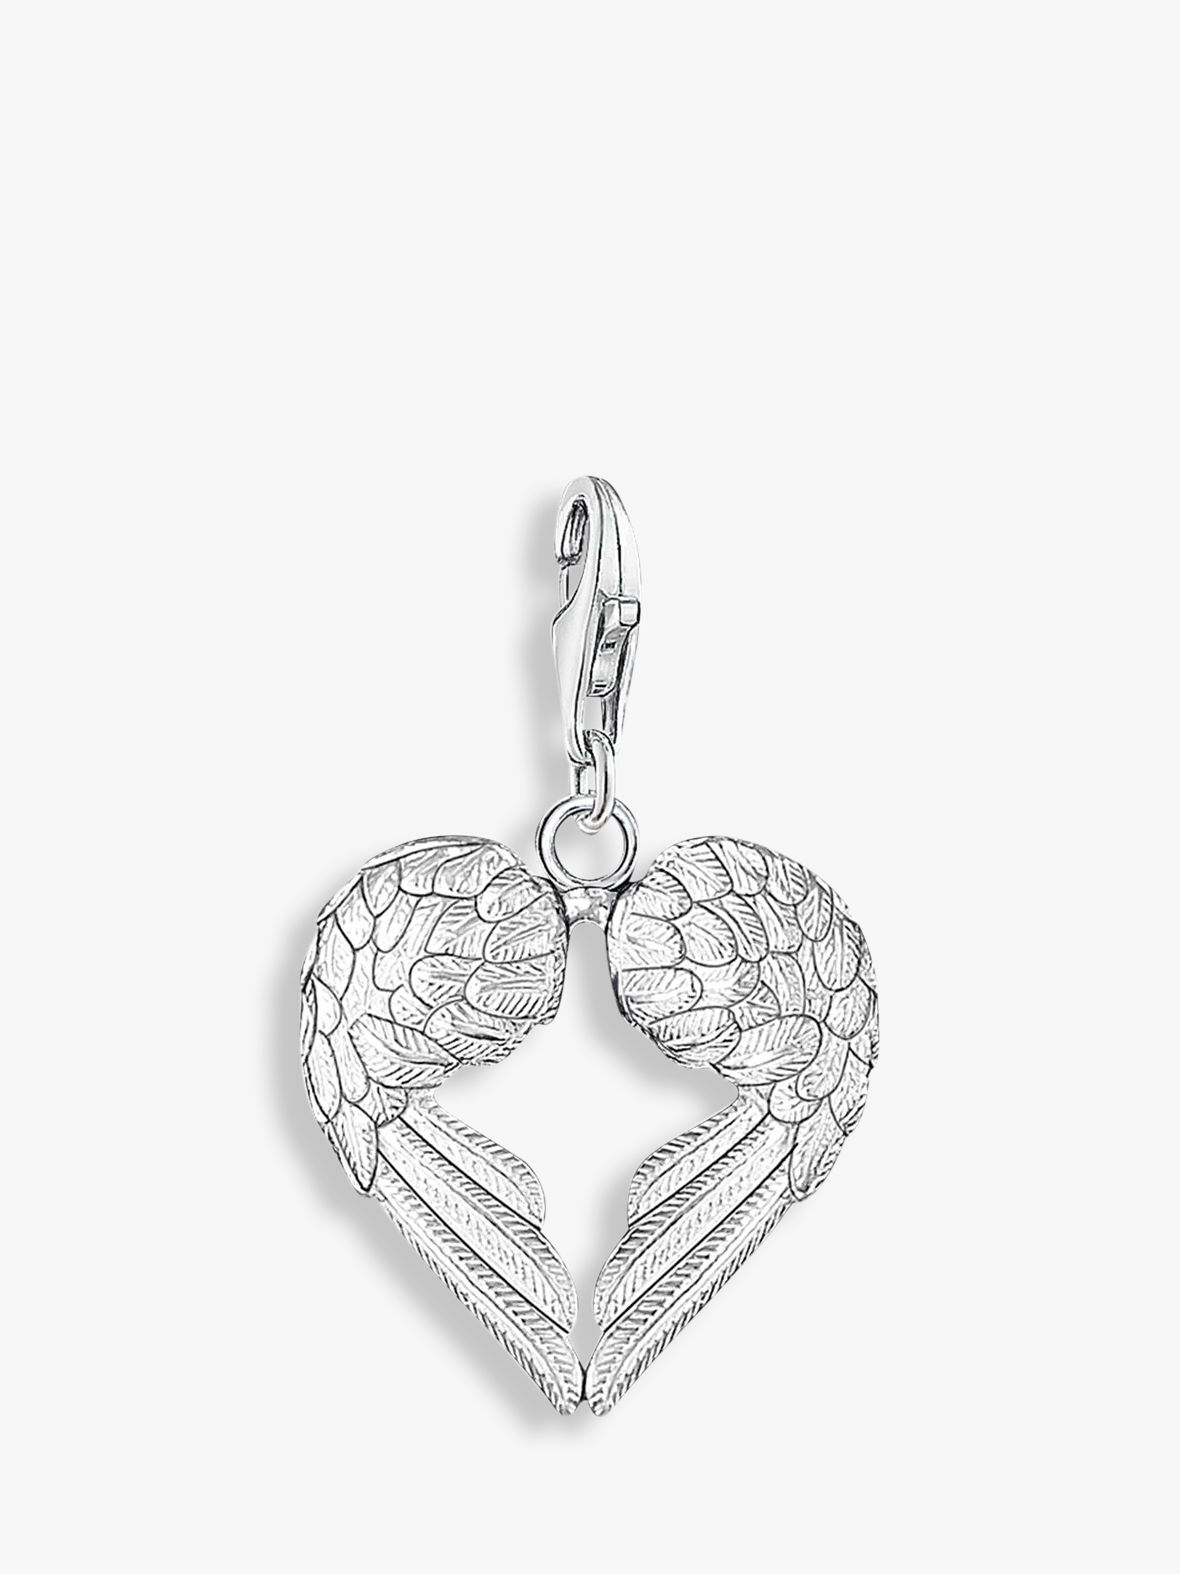 Thomas Sabo THOMAS SABO Charm Club Angel Wings Heart Charm, Silver